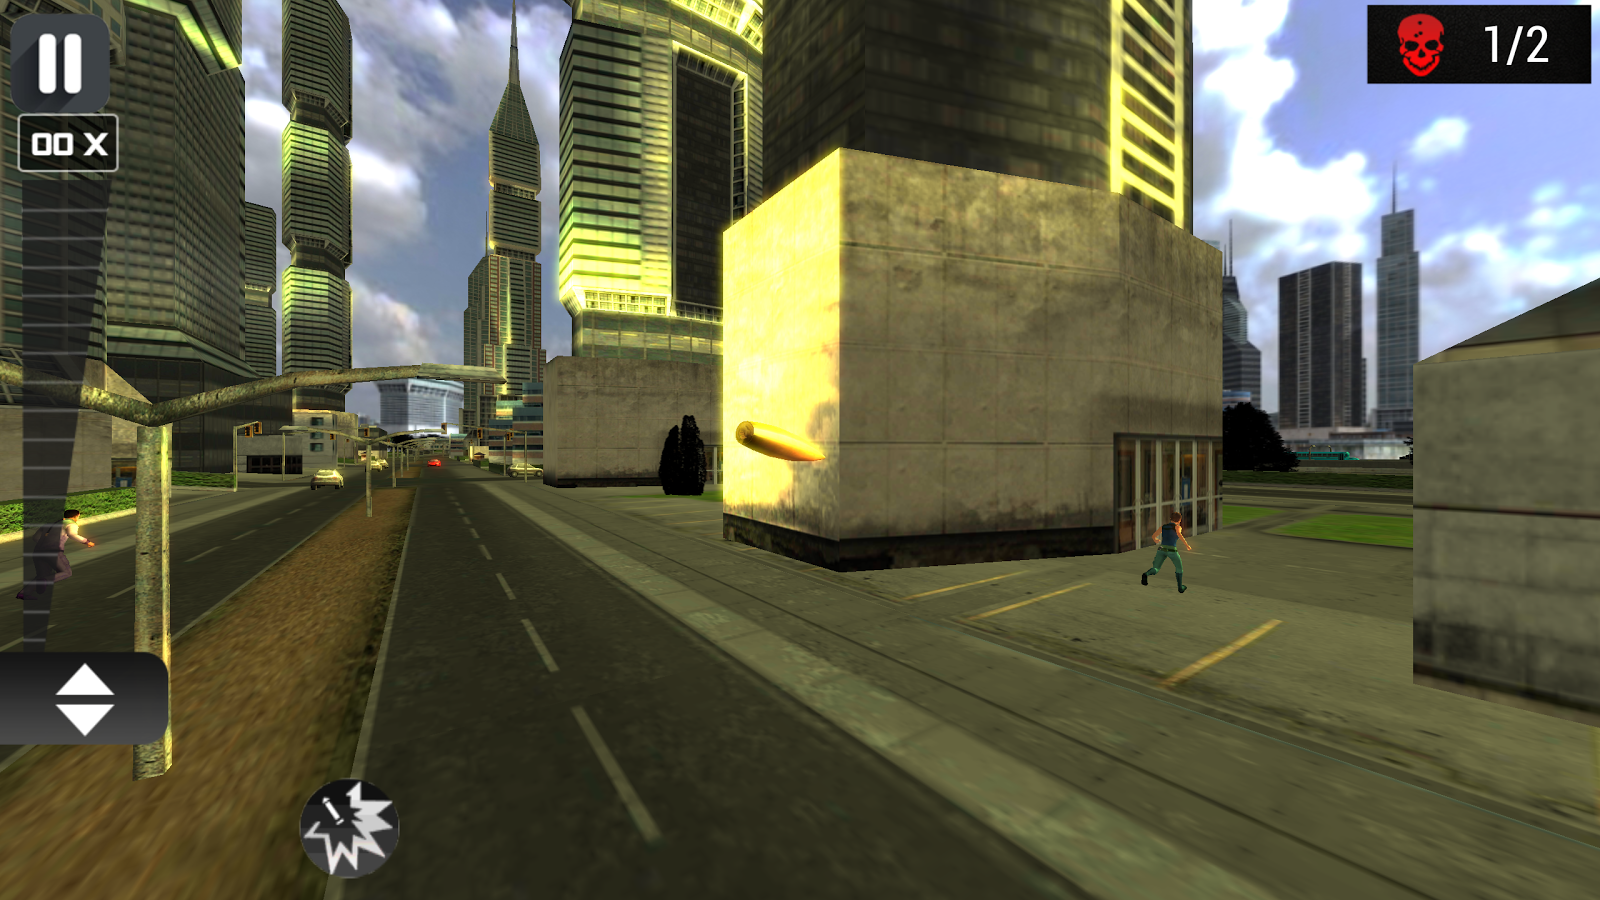 Sniper Terrorist Strike Screenshot 3